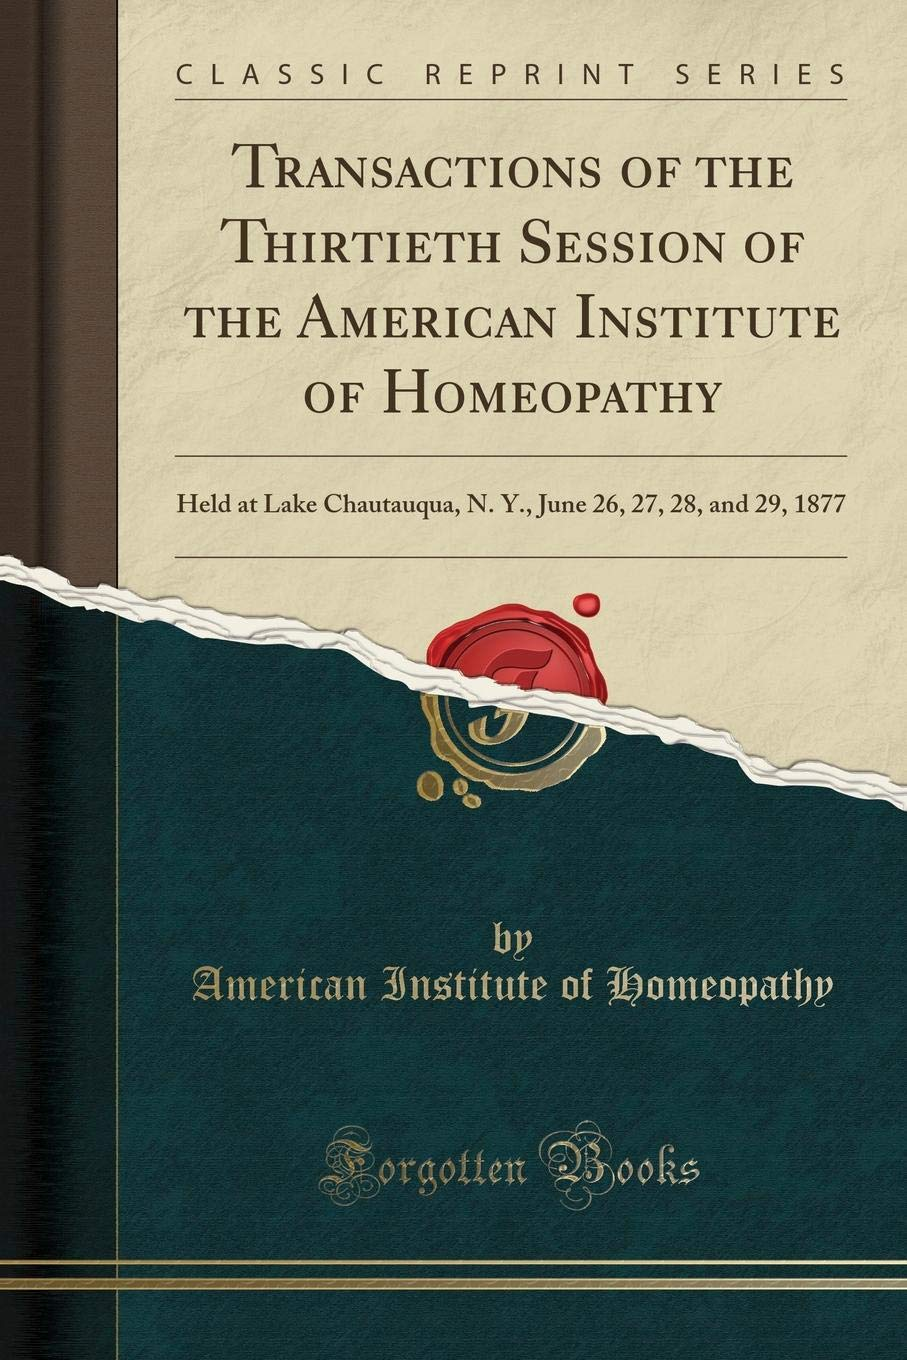 Download Transactions of the Thirtieth Session of the American Institute of Homeopathy: Held at Lake Chautauqua, N. Y., June 26, 27, 28, and 29, 1877 (Classic Reprint) PDF